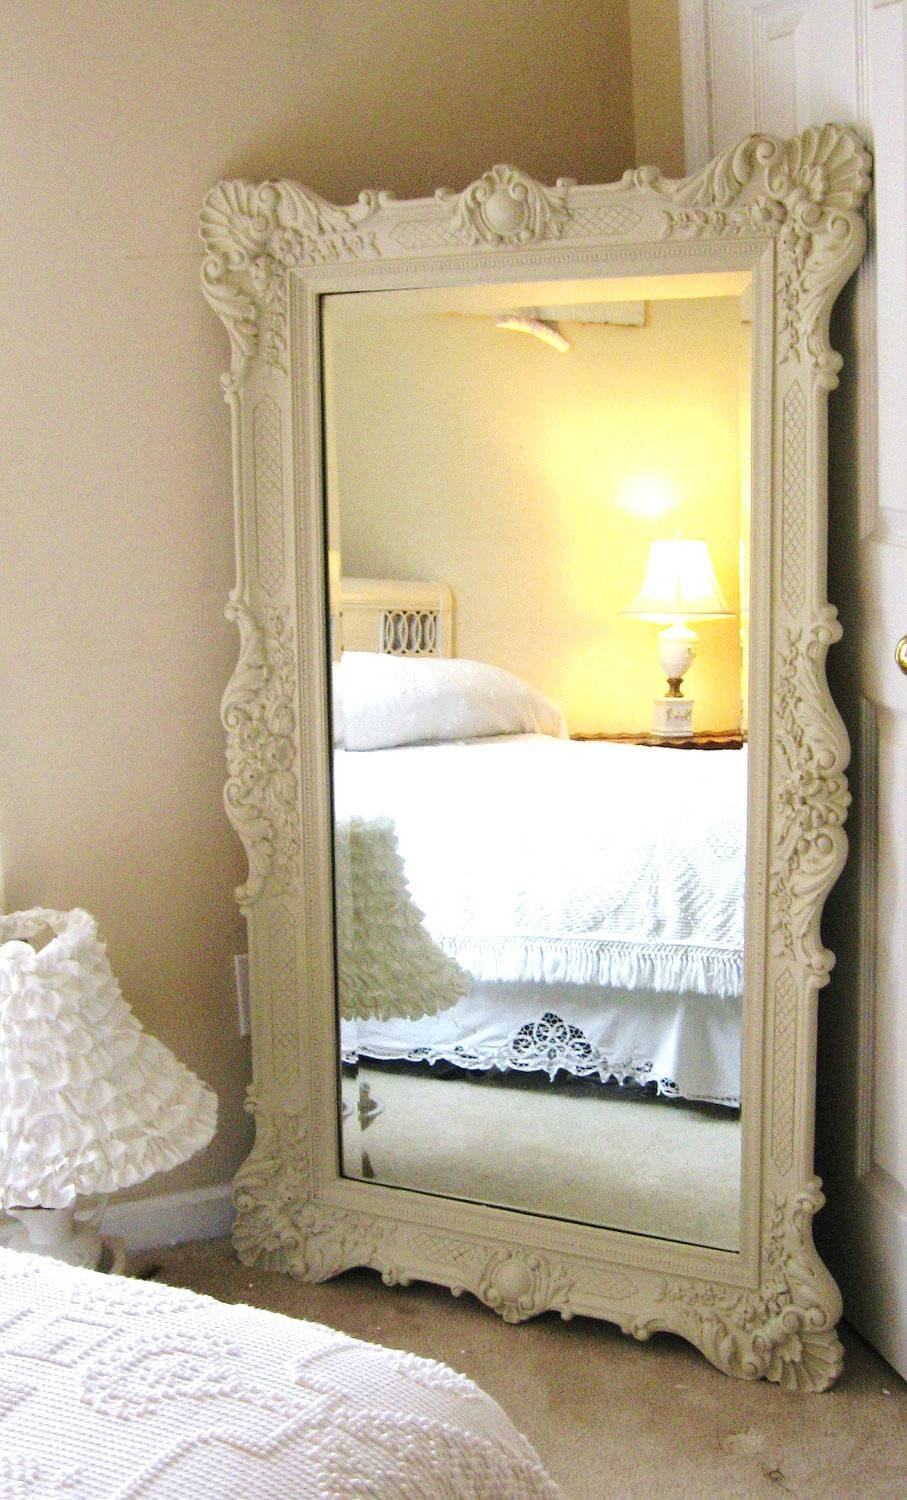 Shabby Chic Floor Mirror 83 Cute Interior And Bathroomshabby Chic regarding Shabby Chic Large Mirrors (Image 15 of 25)